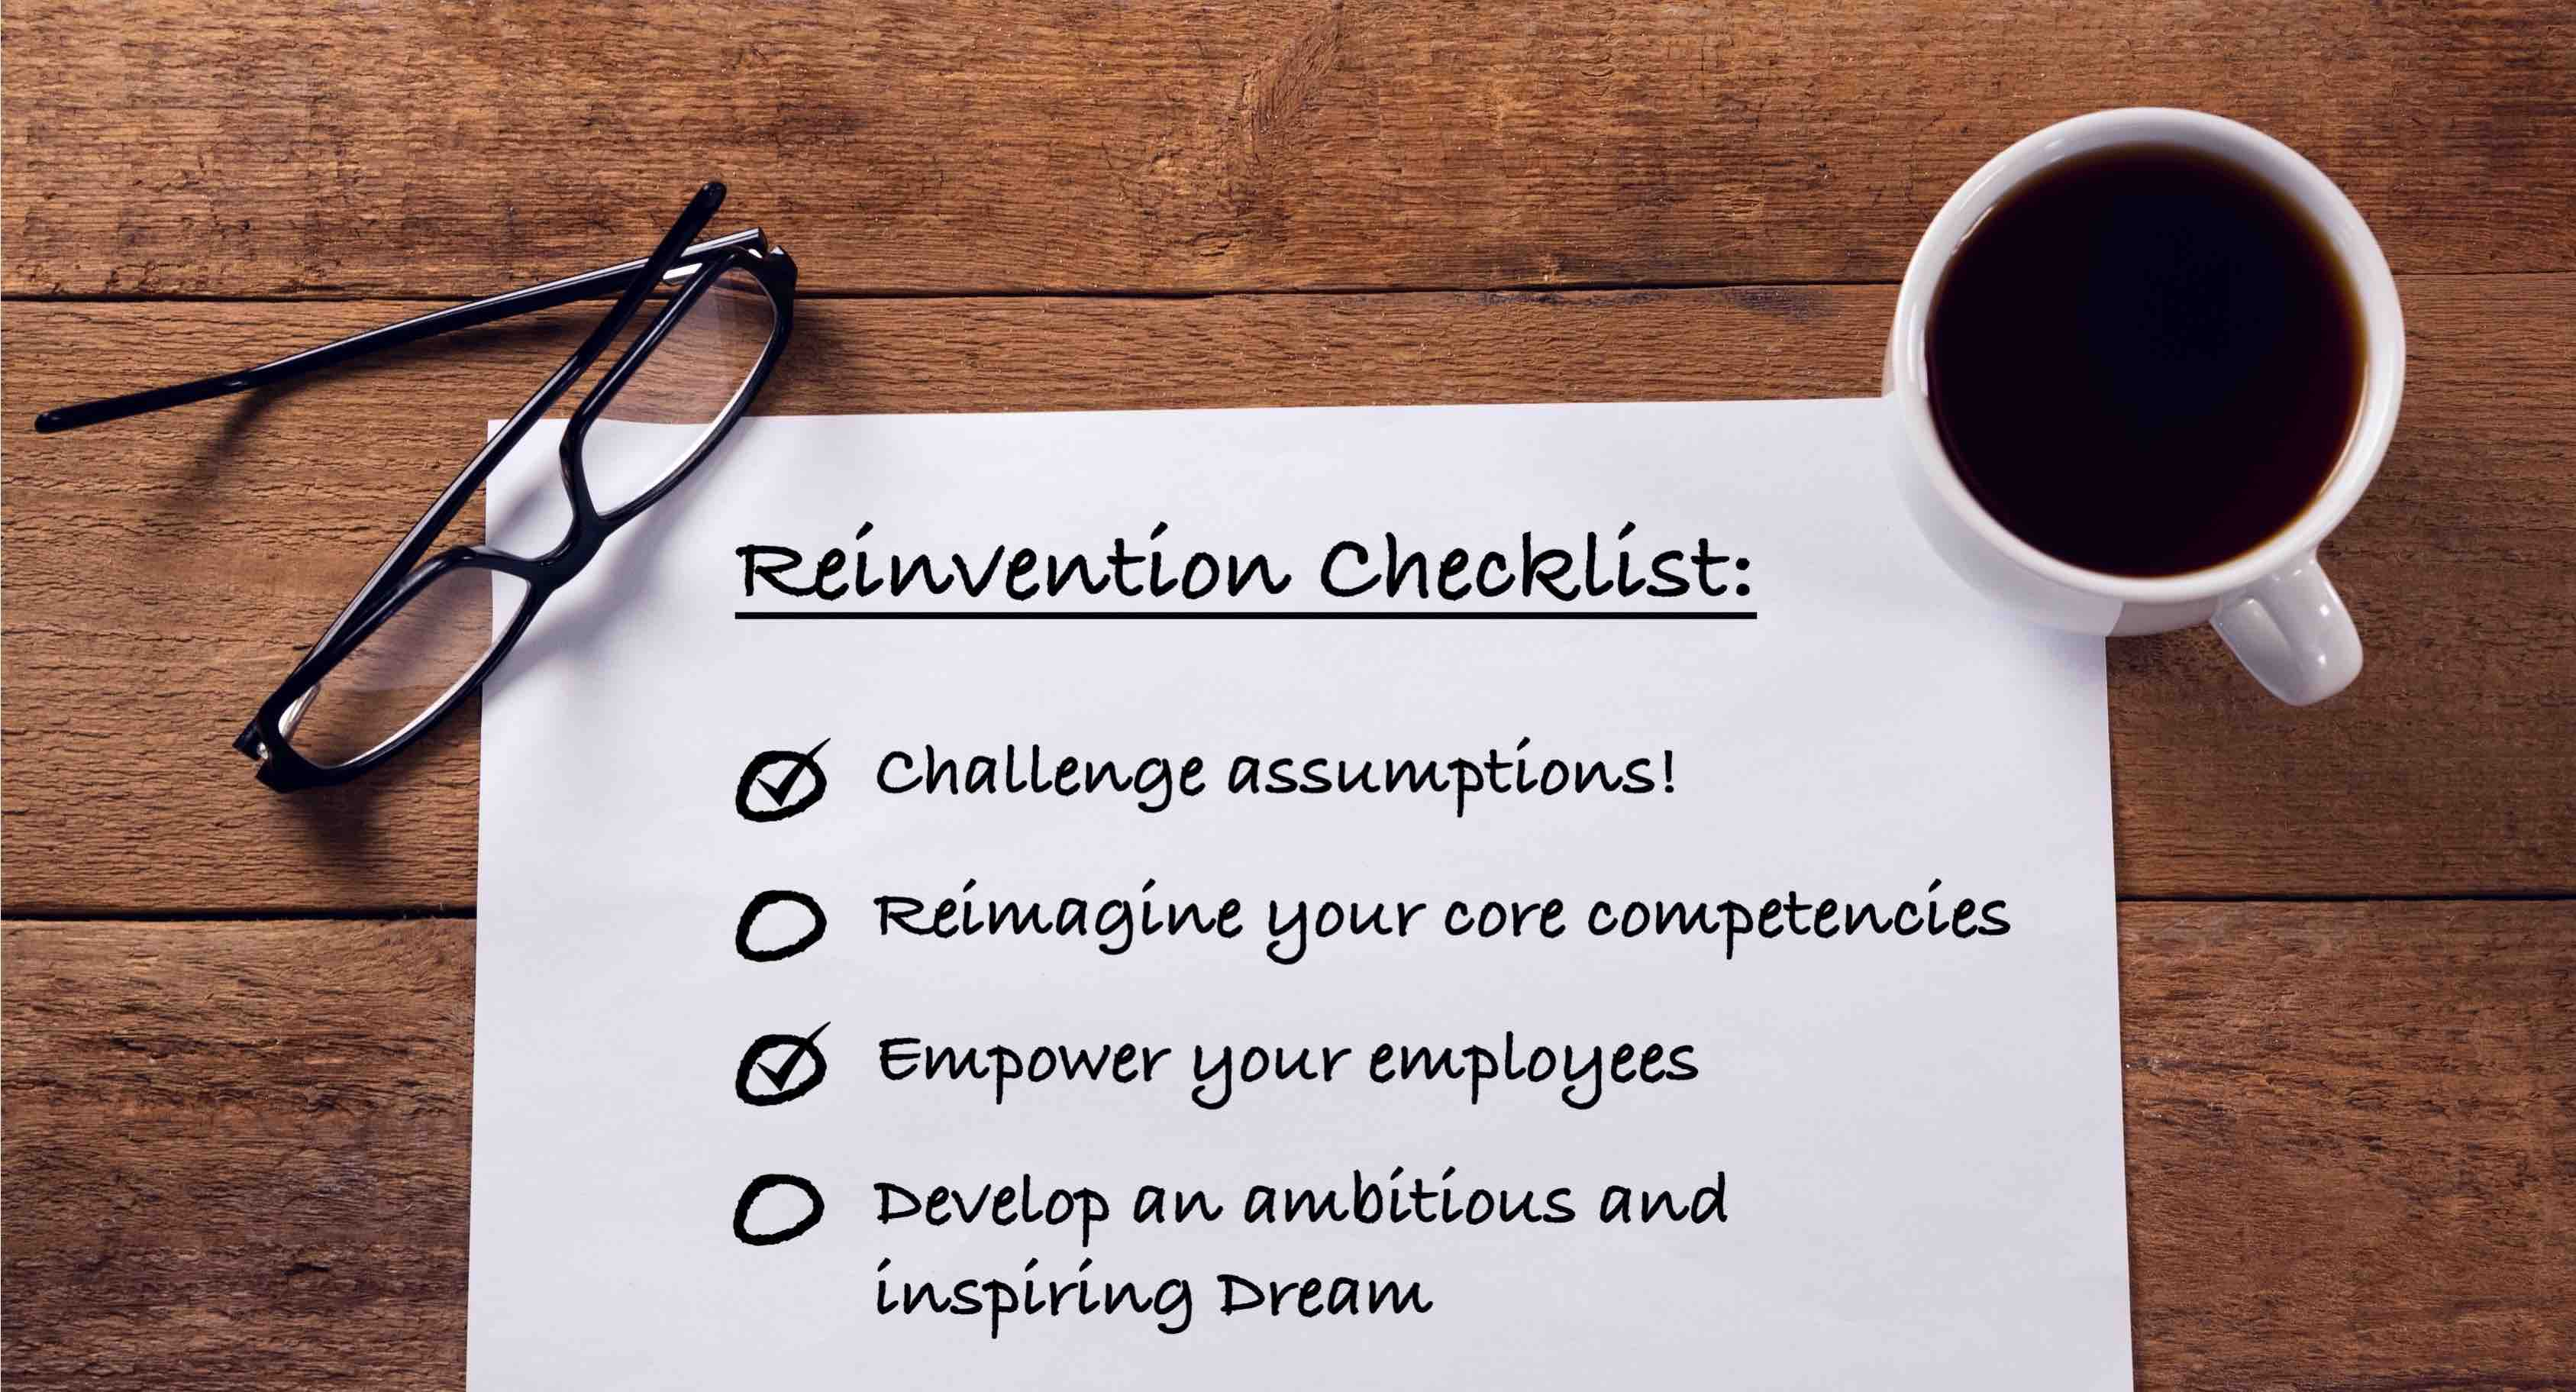 A Quick Guide to Reinvention: How to Reinvent Your Business from a Position of Strength